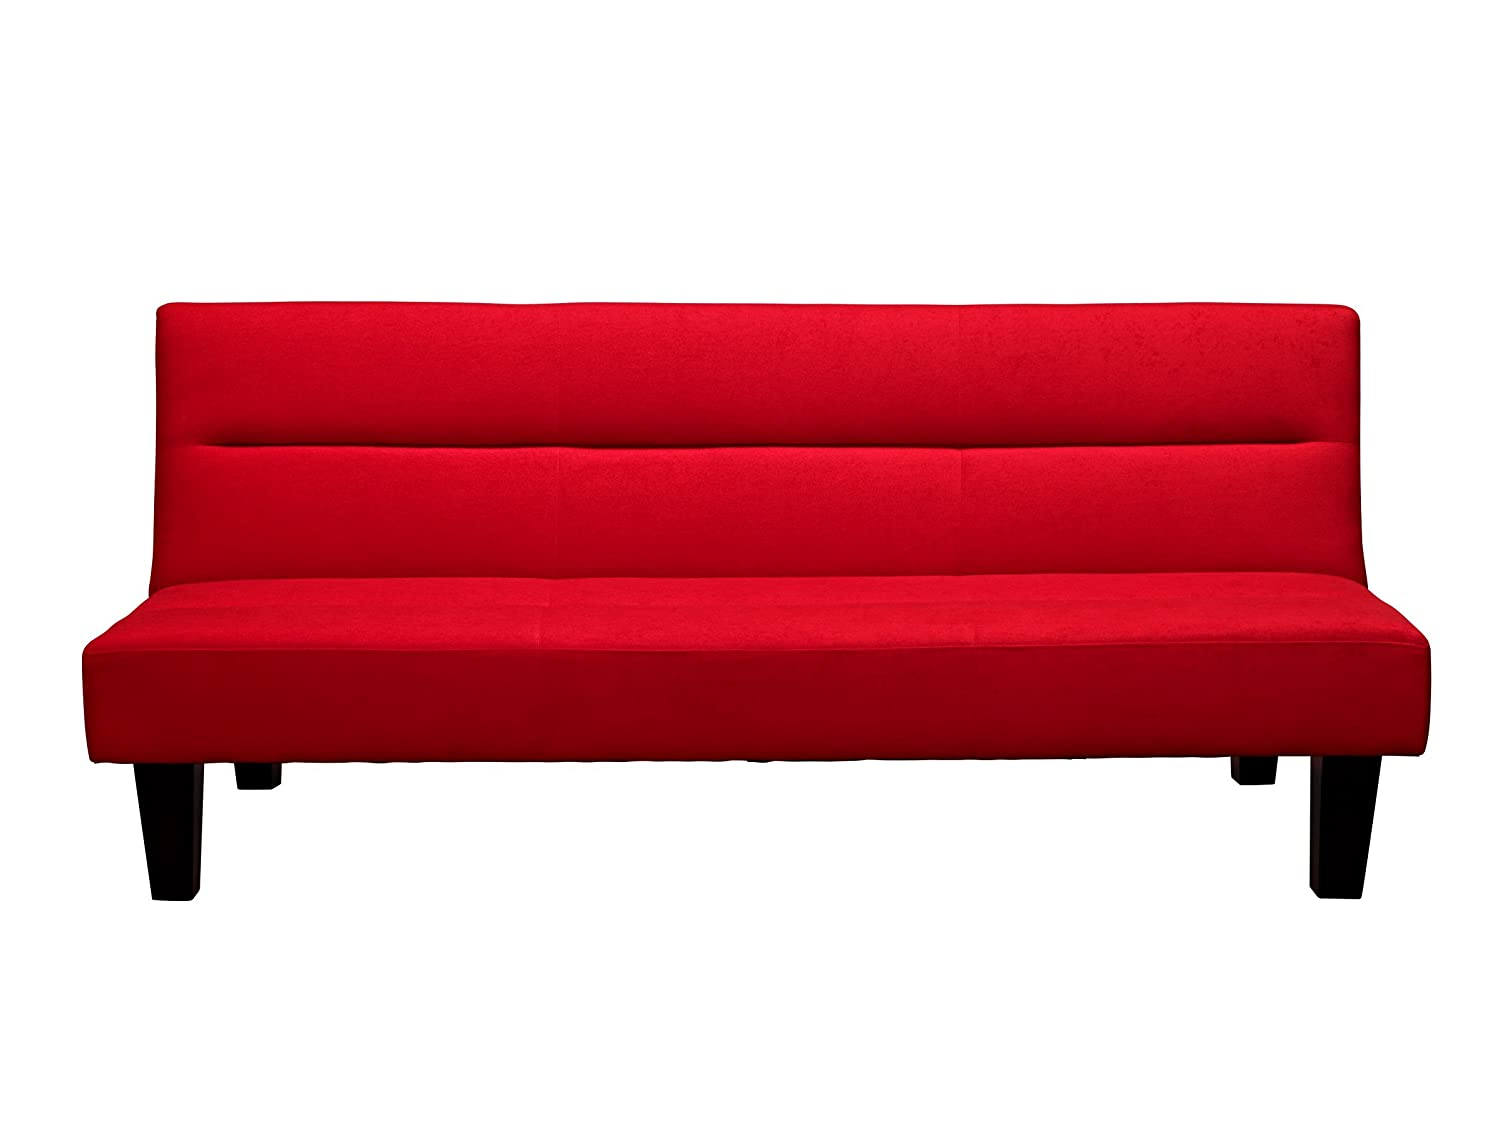 28 red futon couch convertible futon sofa in red for Sofa bed vs futon